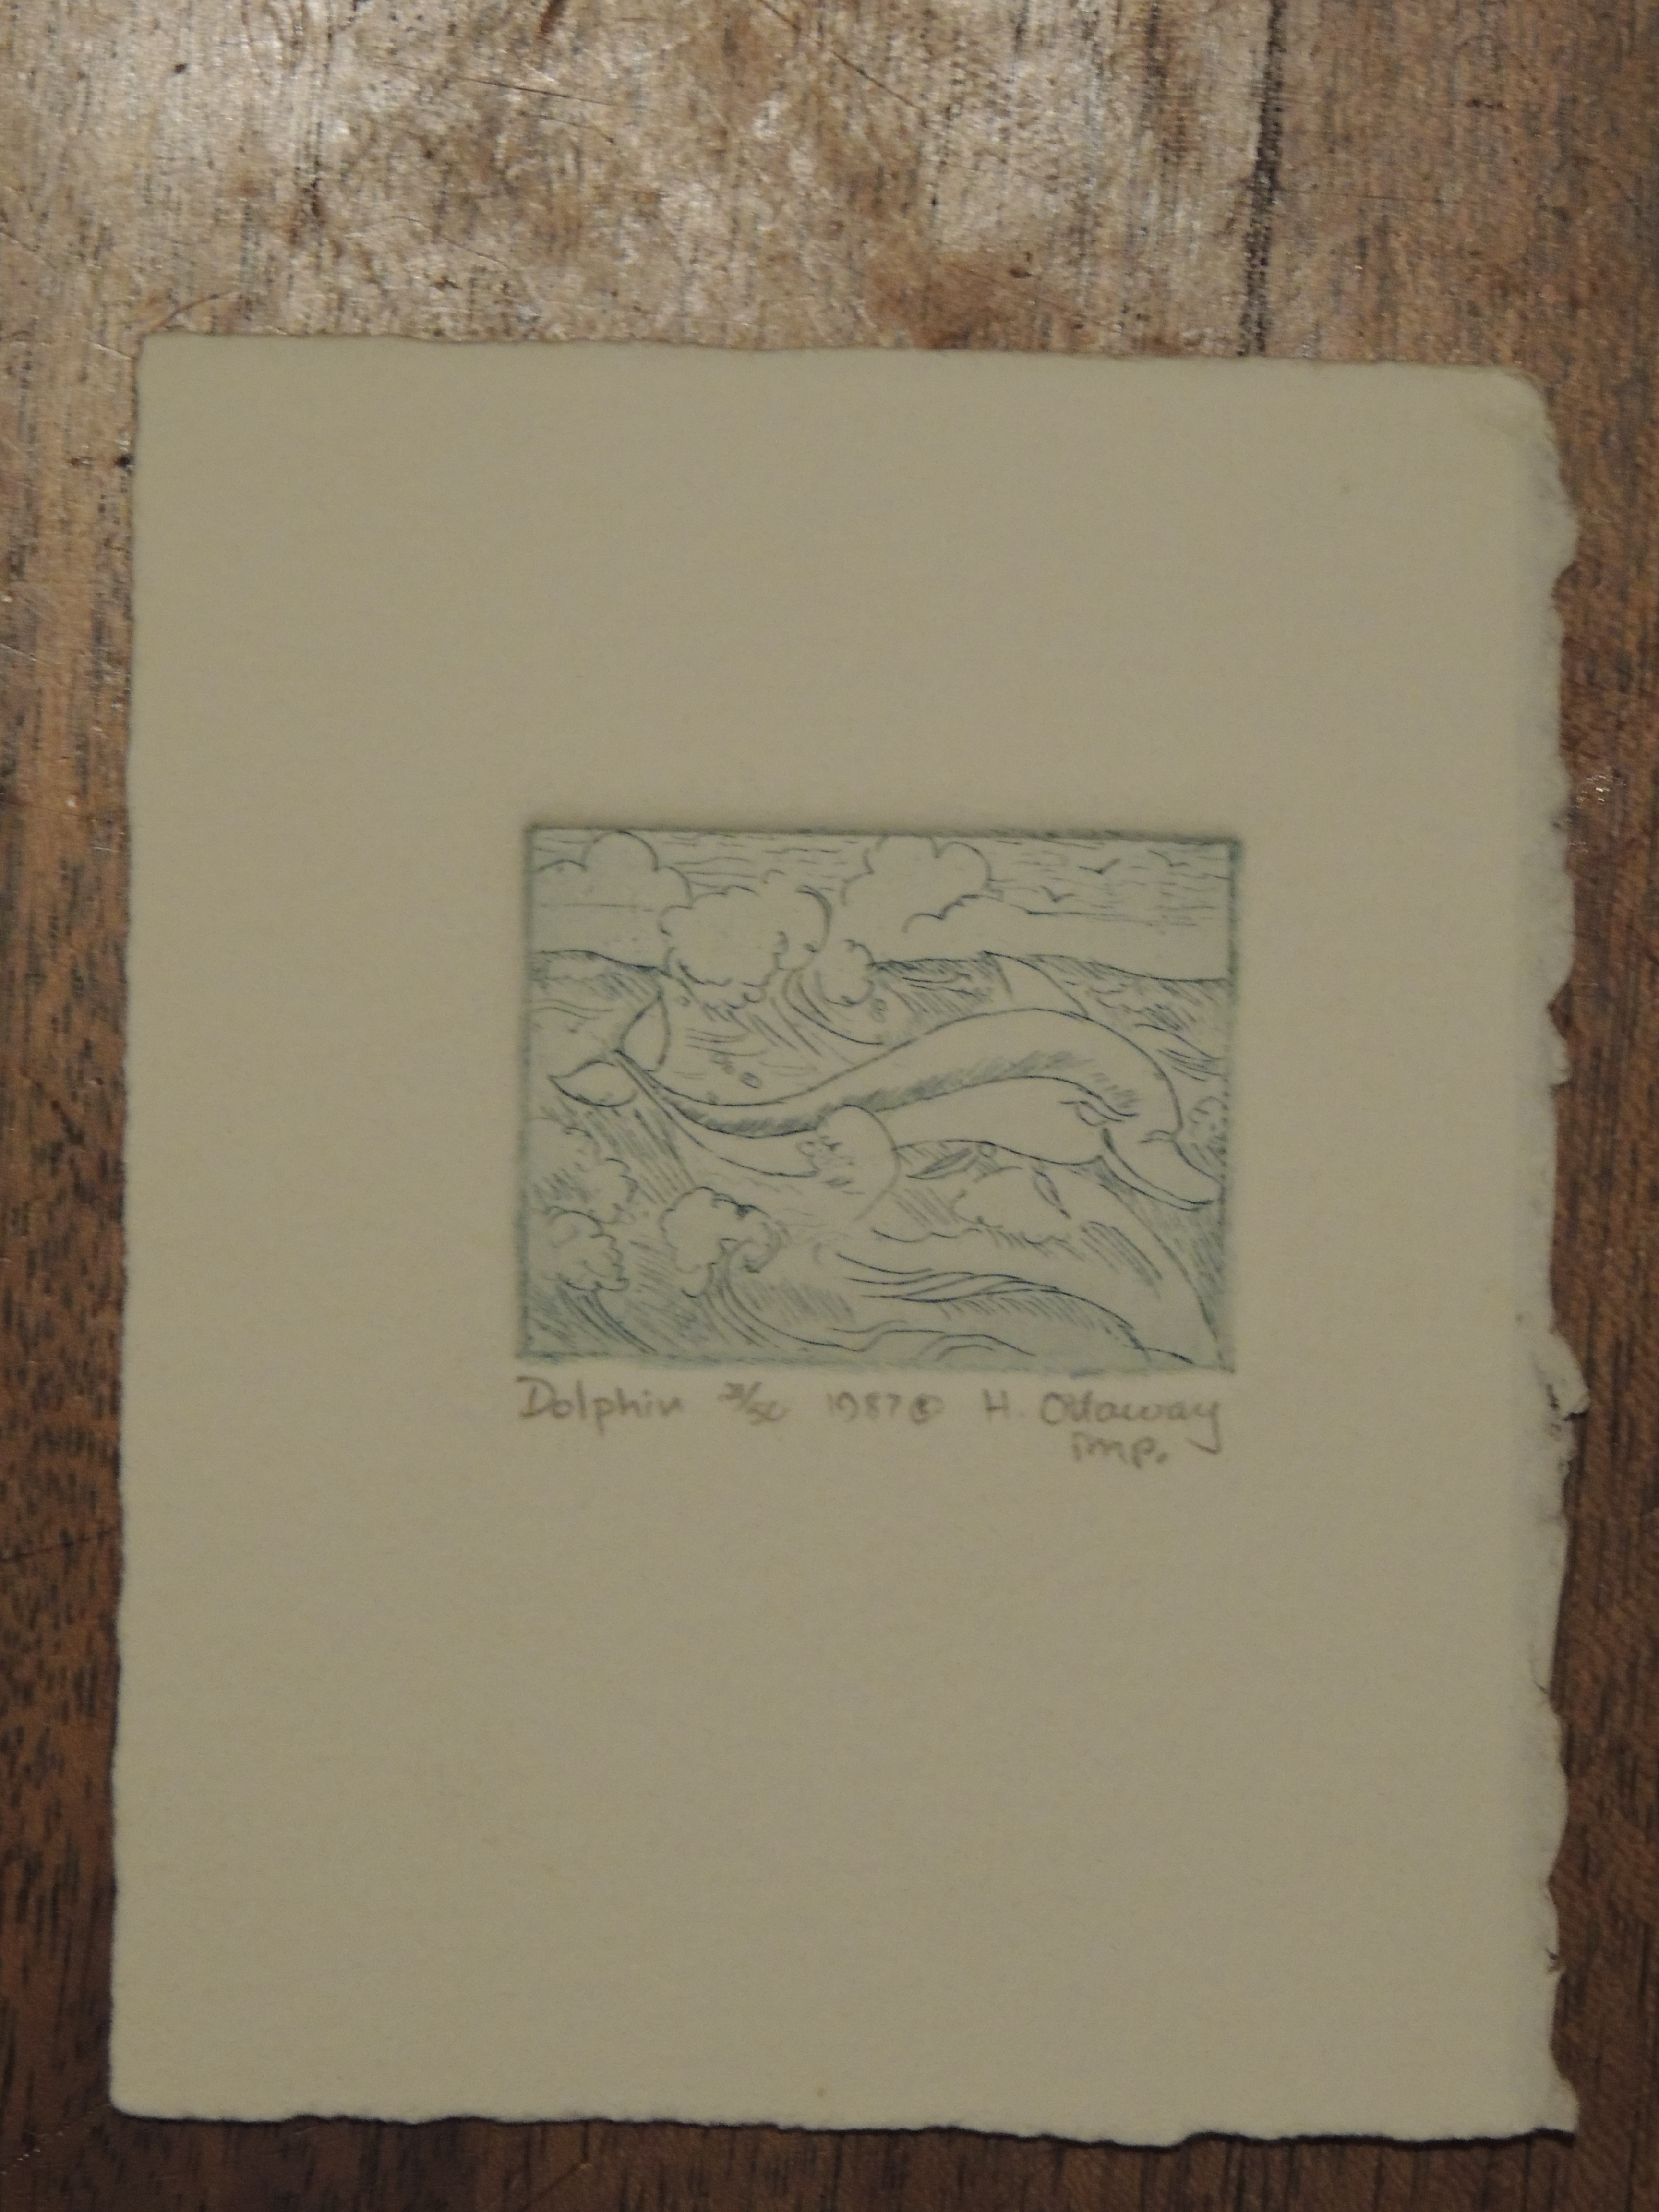 etching: Dolphin, by Helen Ottaway